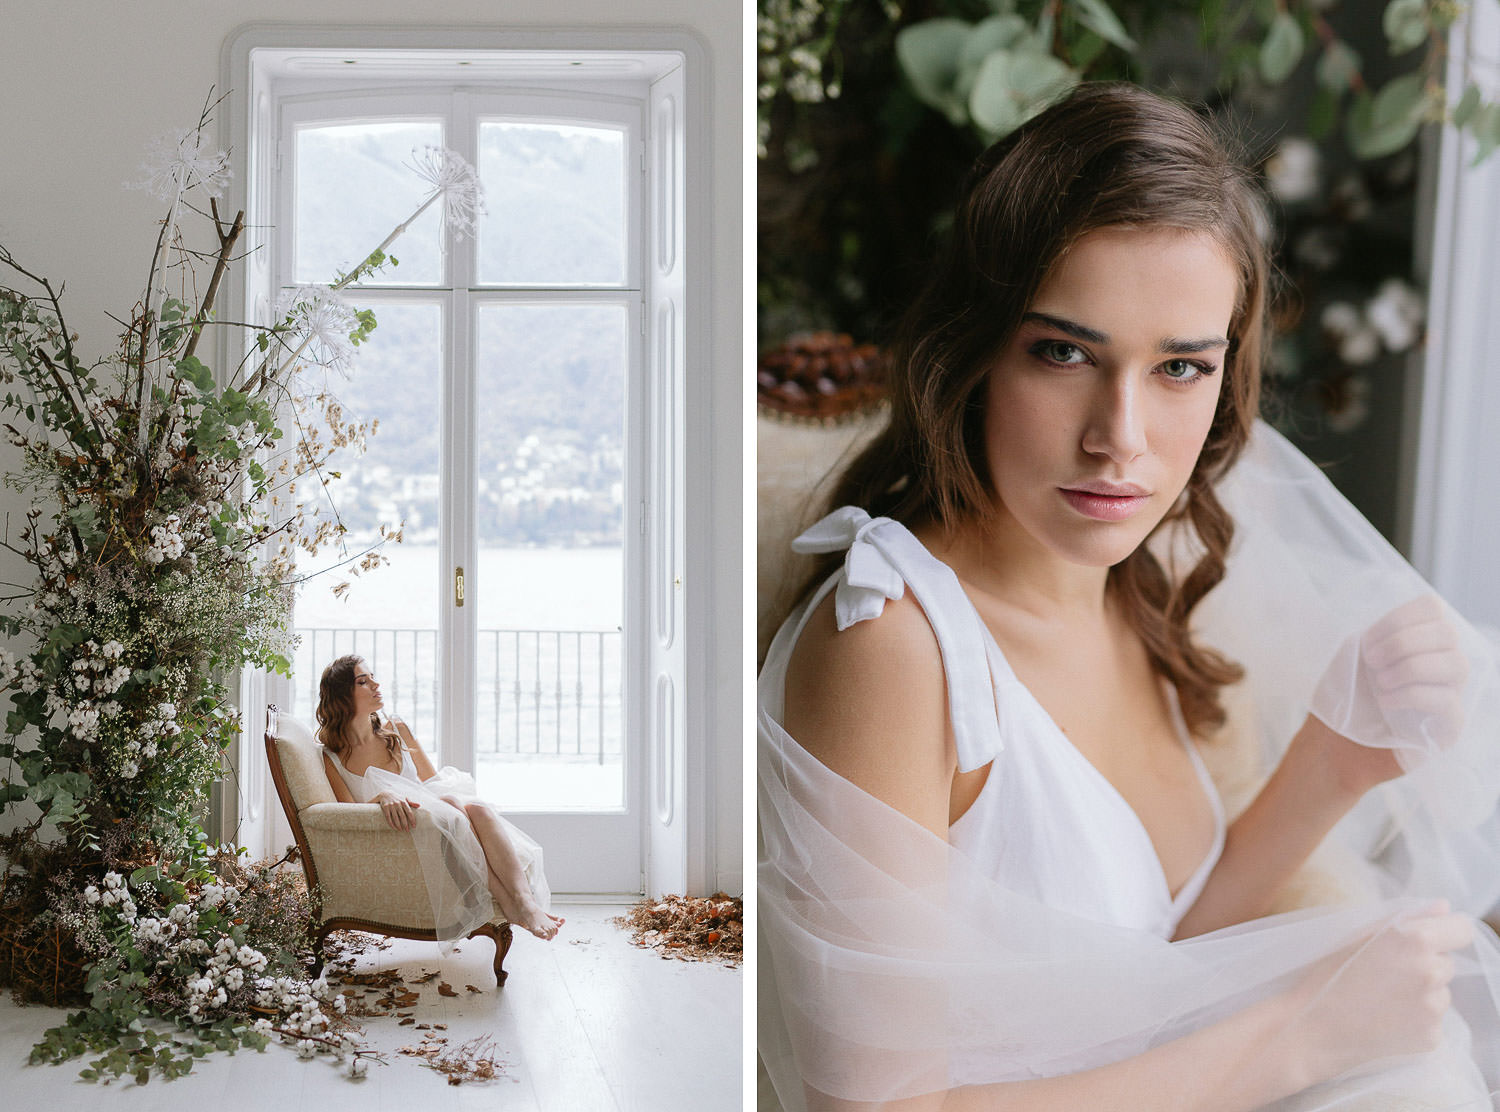 Lake Como wedding photographer Camilla Anchisi - elegant and refined wedding at Villa Bianca Stucchi